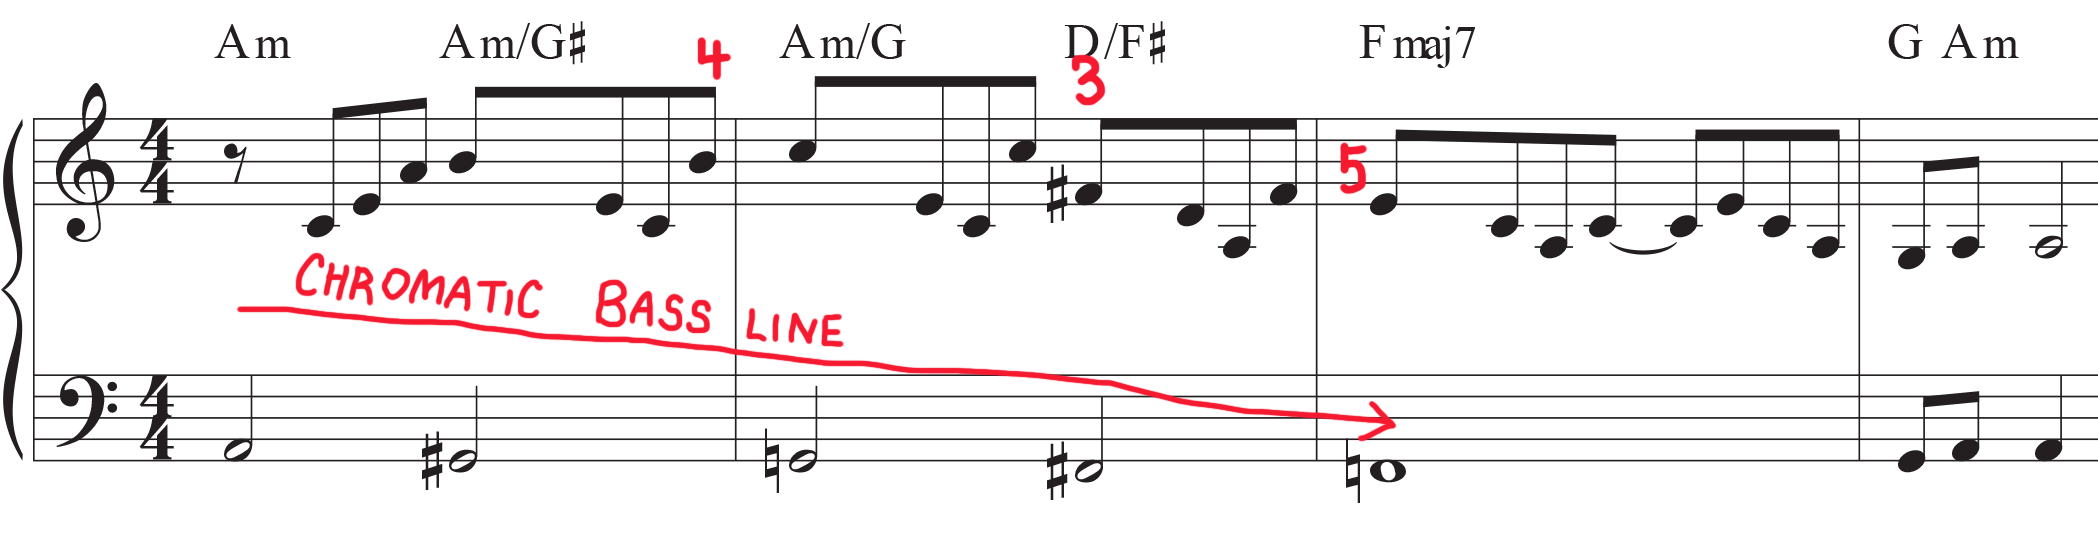 Stairway to Heaven sheet music mark-up of the introduction showing fingering and descending chromatic bass line.